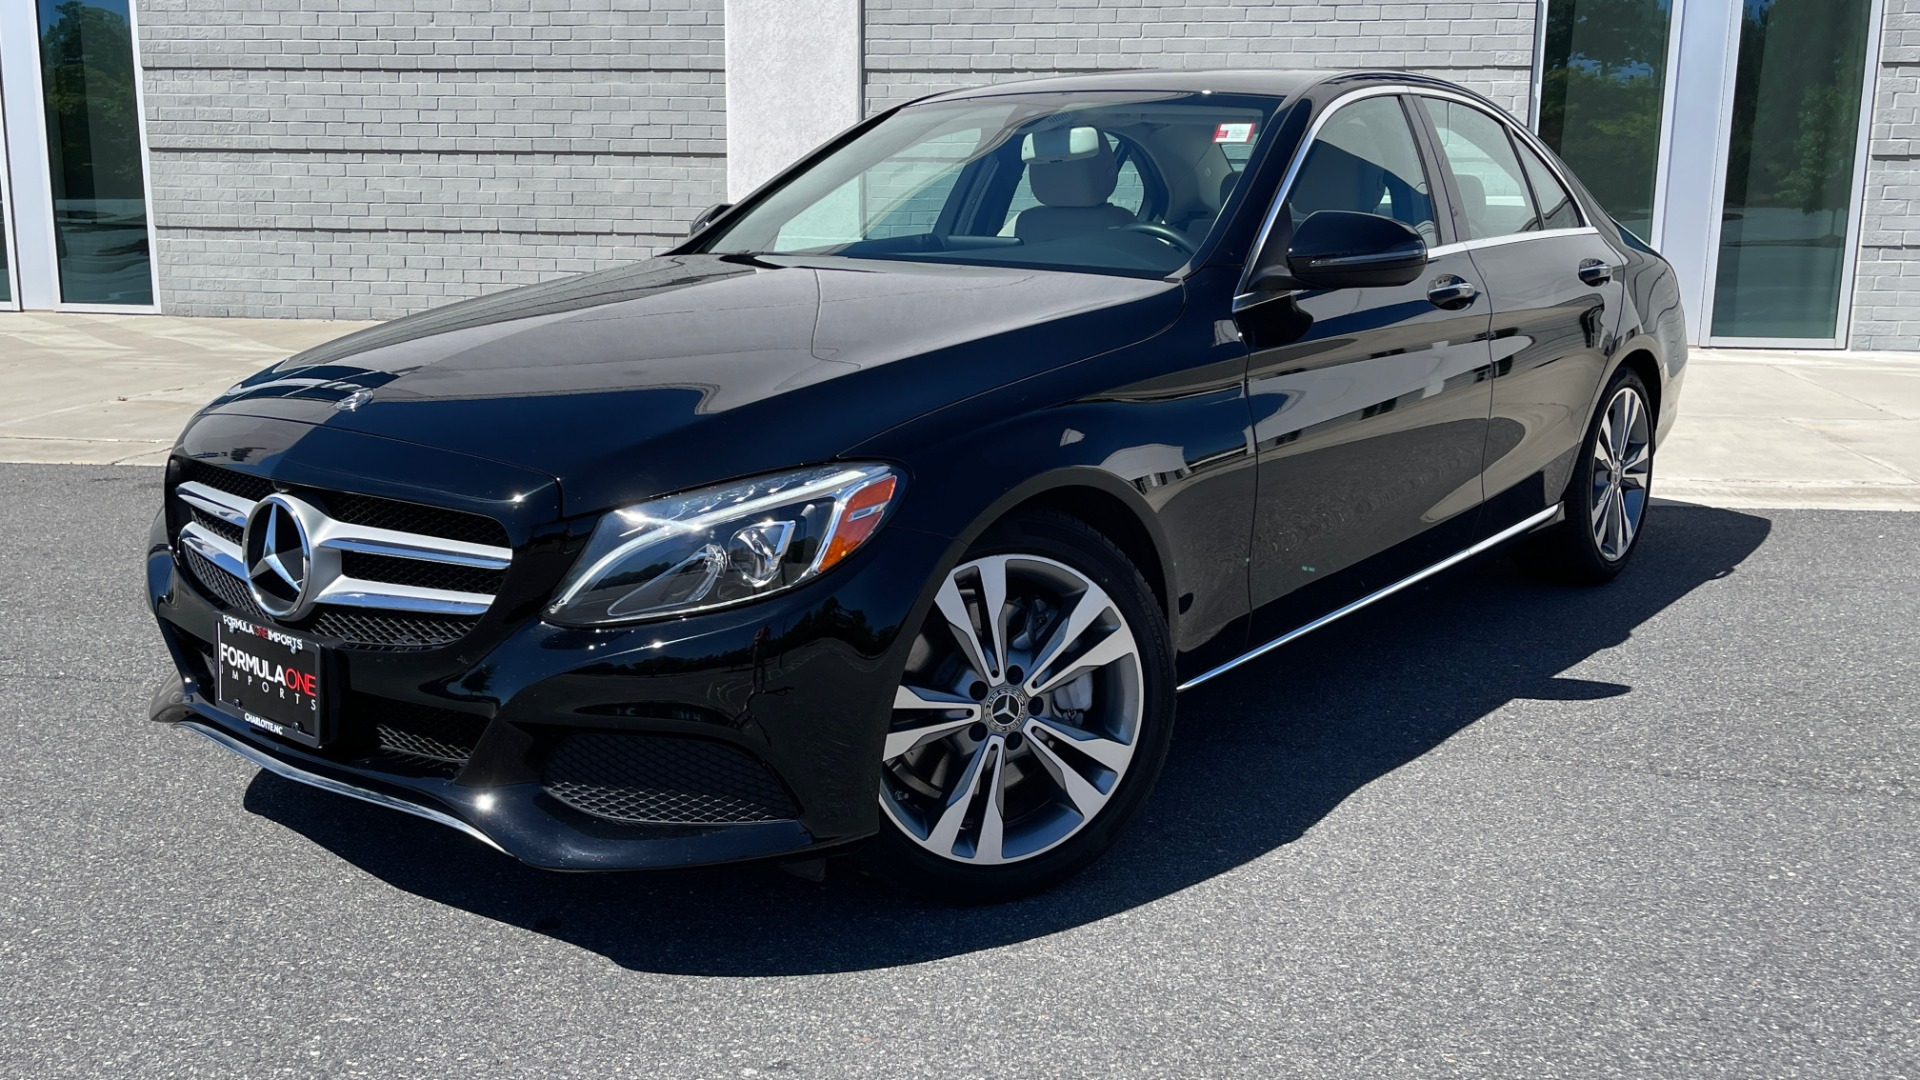 Used 2018 Mercedes-Benz C-CLASS C 300 PREMIUM / APPLE CARPLAY / SUNROOF / REARVIEW for sale $31,995 at Formula Imports in Charlotte NC 28227 1